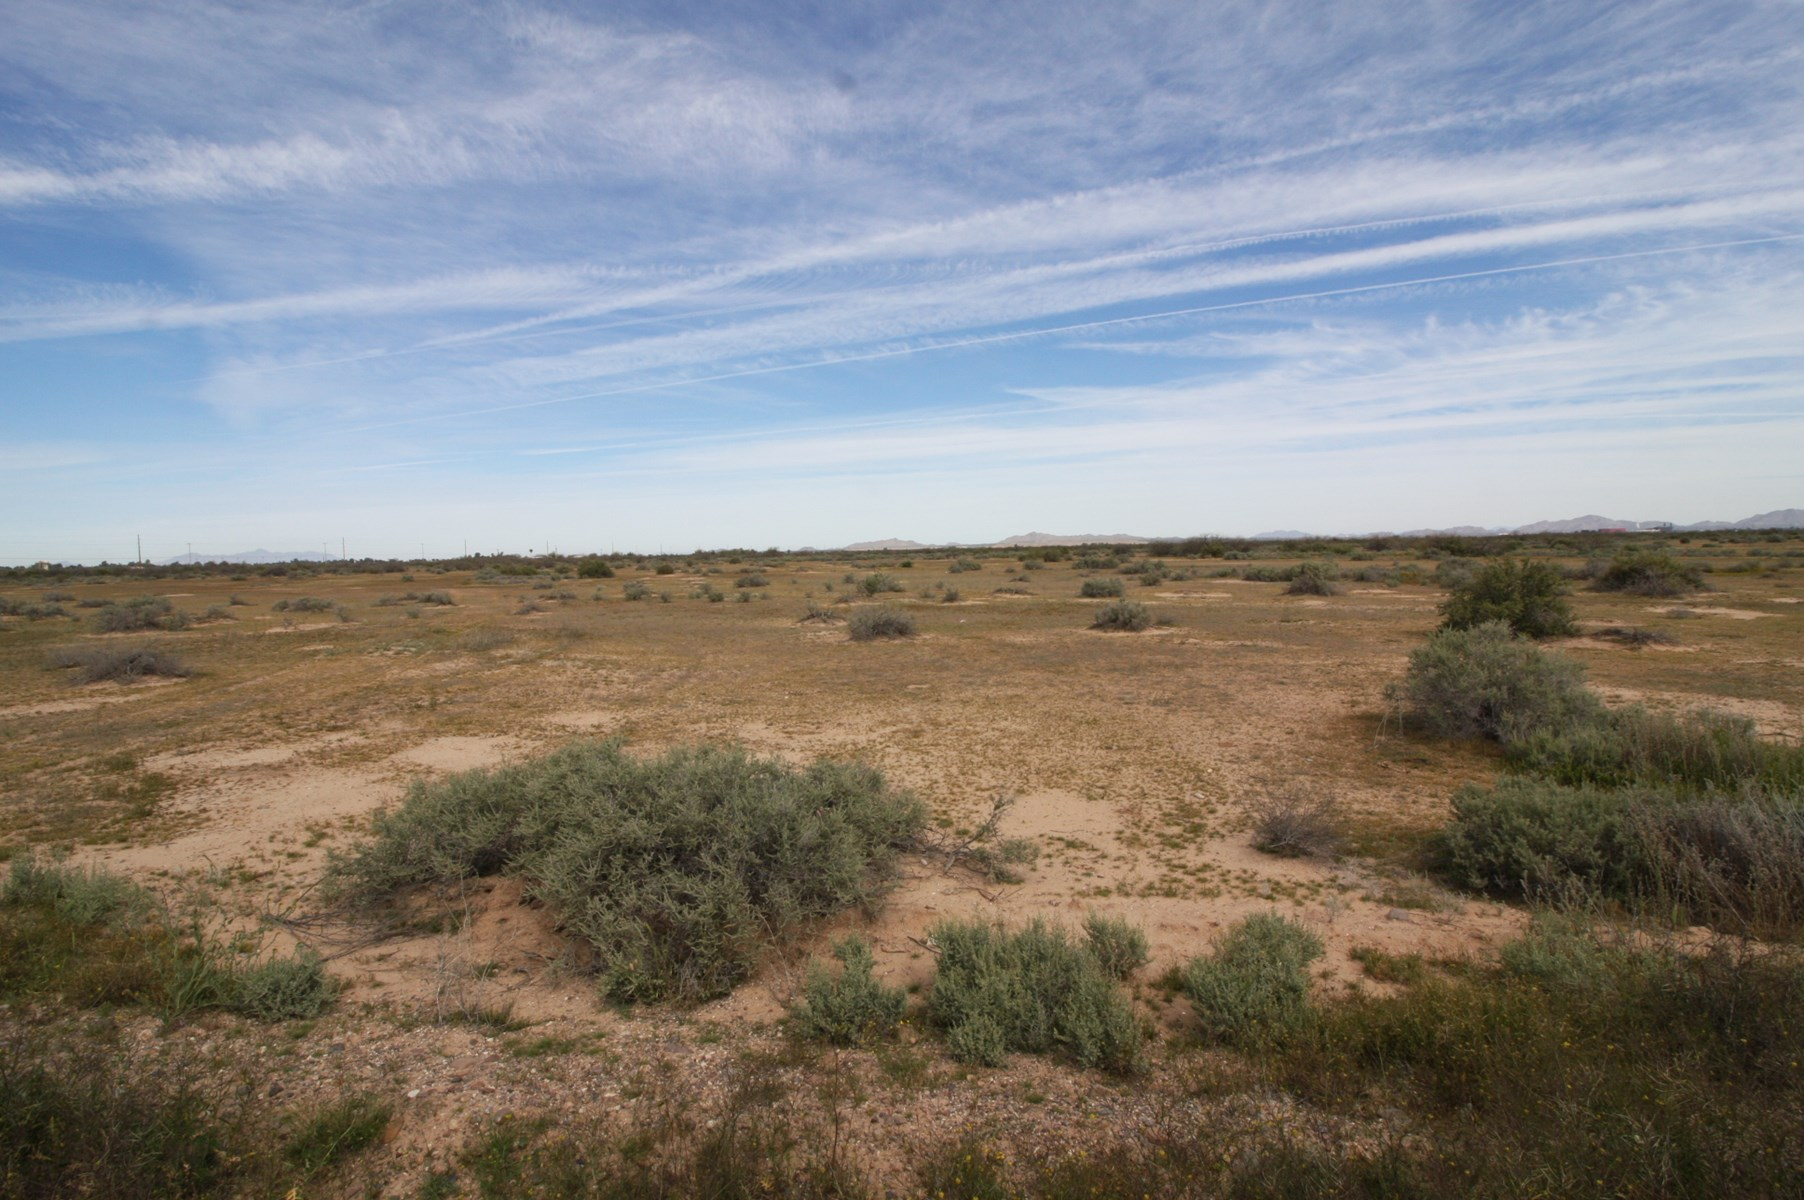 Land for sale Casa Grande Arizona, horse property for sale